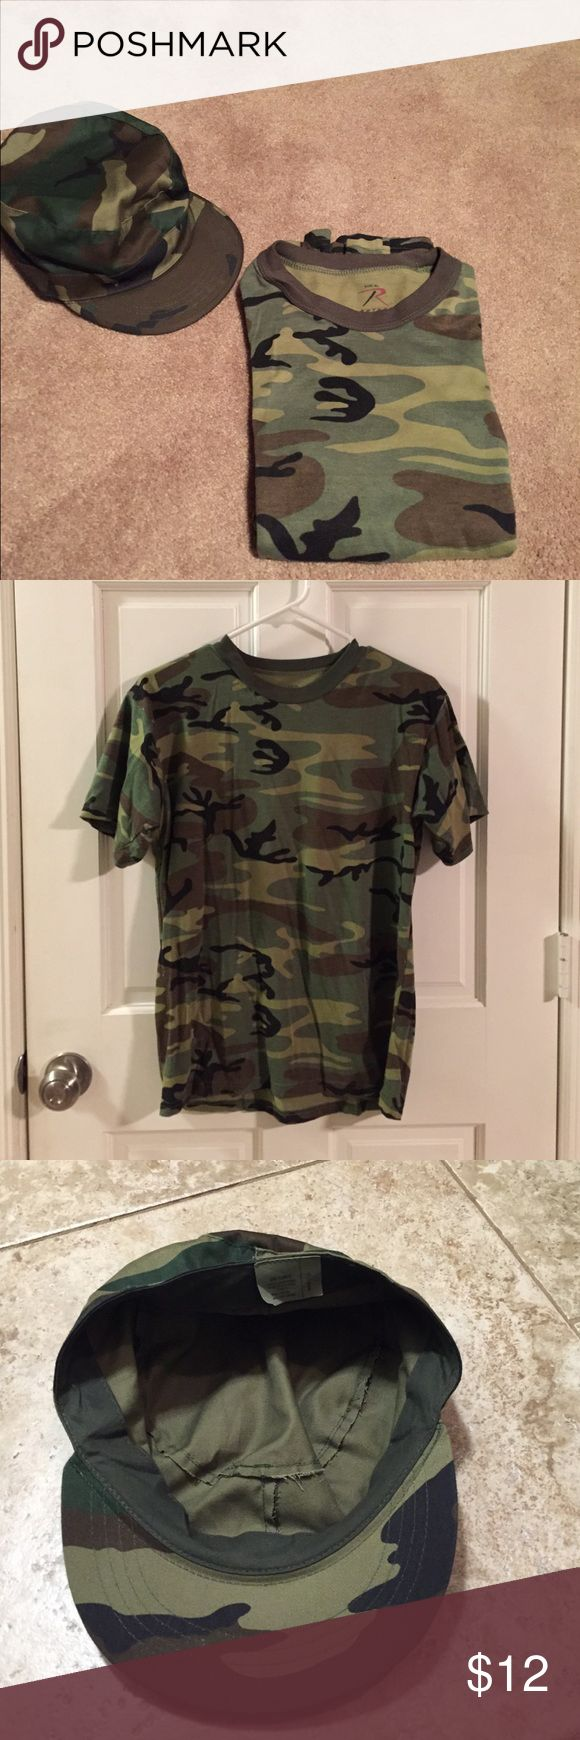 Boys XL Camo tee shirt with Camo Hat An XL Boys Rothco brand Camo tee shirt- 60% cotton 40% polyester/ and a cotton/polyester cap size med (7 1/4).  Camouflage colors are green, tan, black and brown. From a smoke free/pet free home. Rothco Shirts & Tops Tees - Short Sleeve